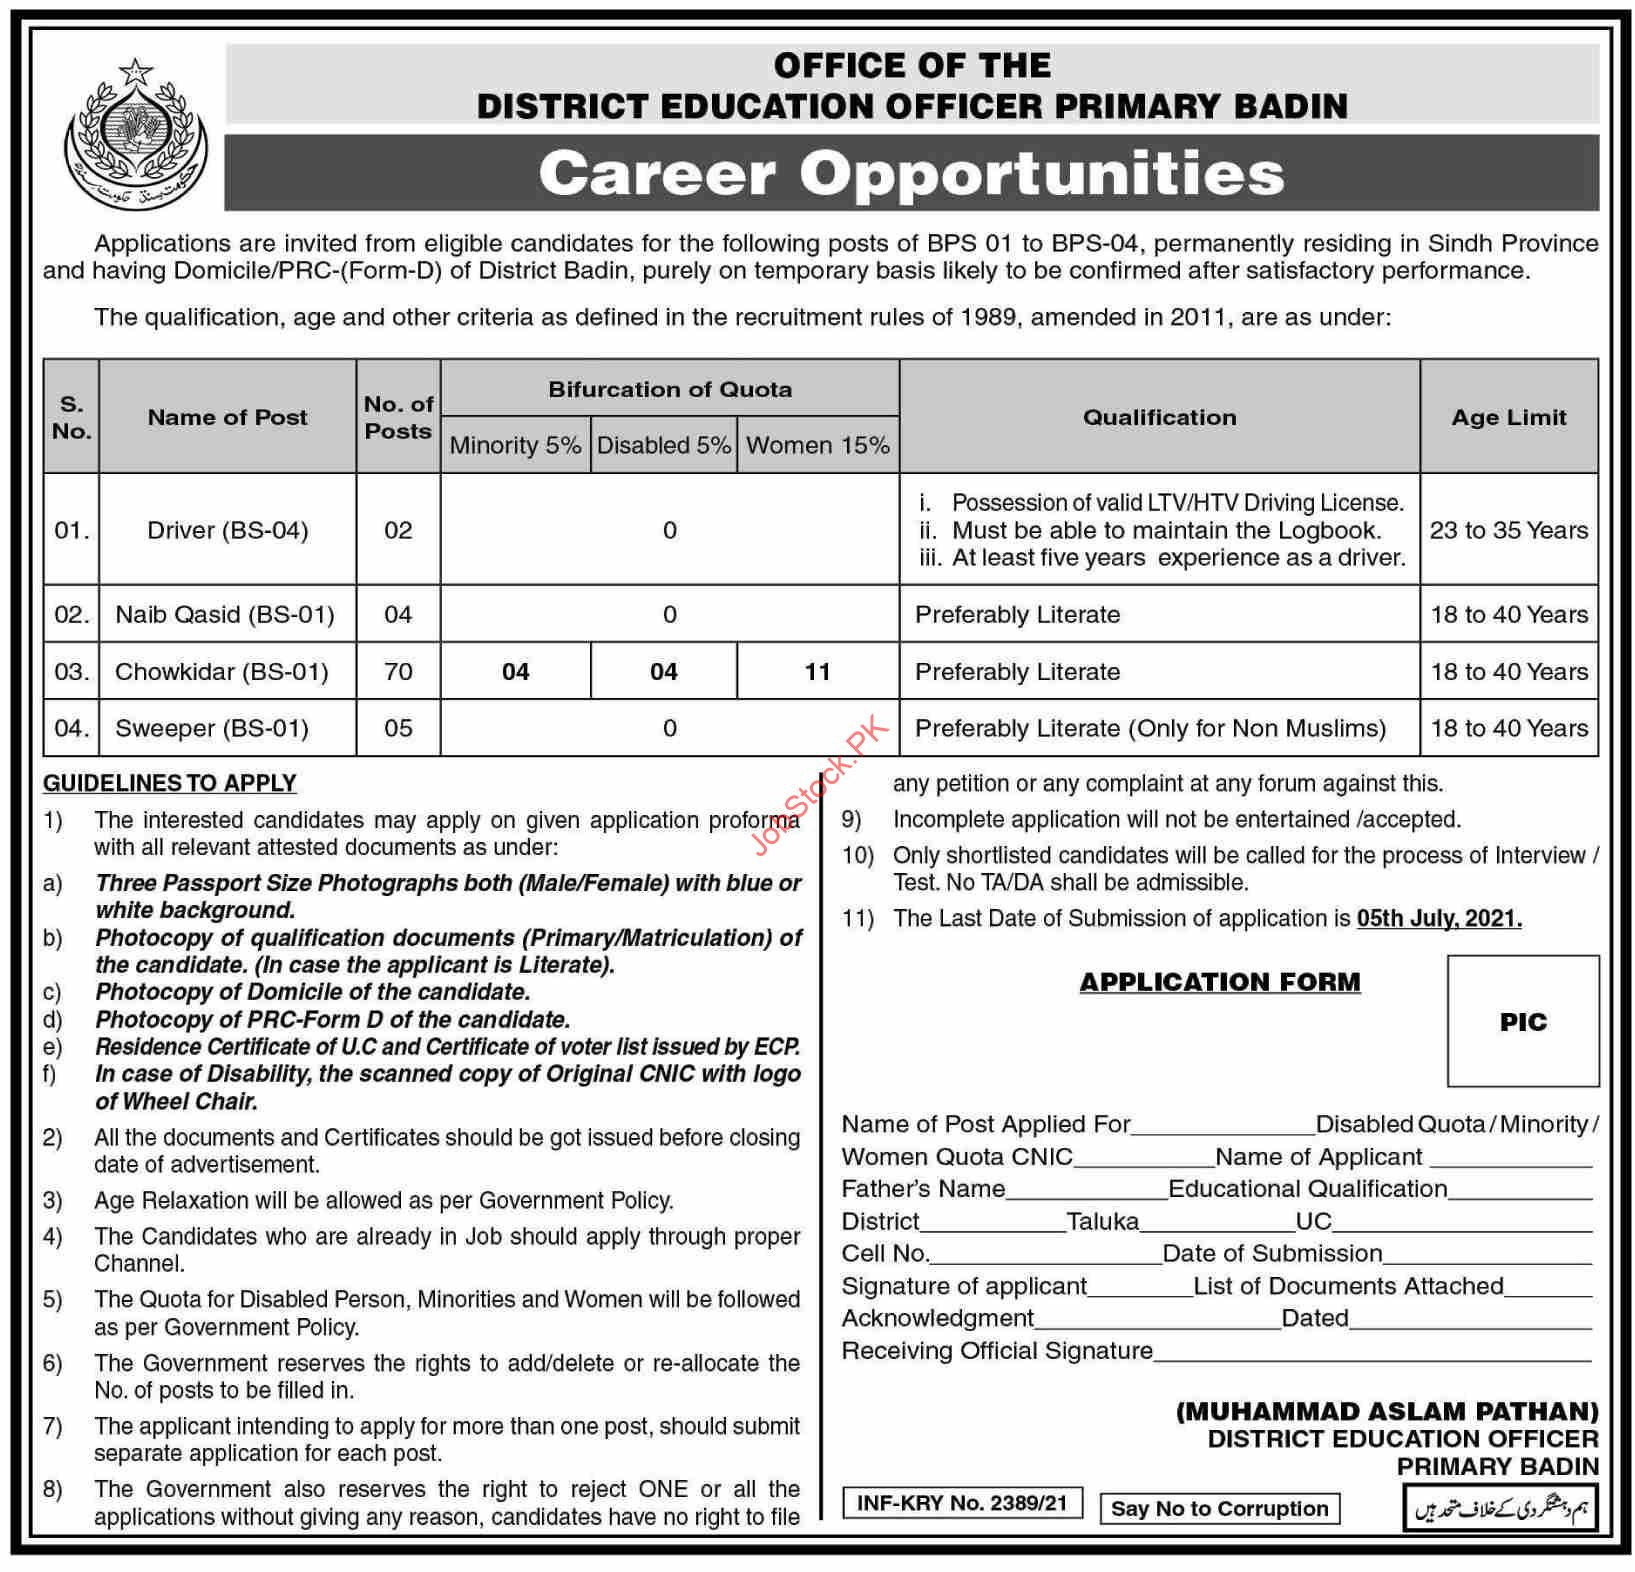 Sindh Education Department Primary Badin Jobs 2021